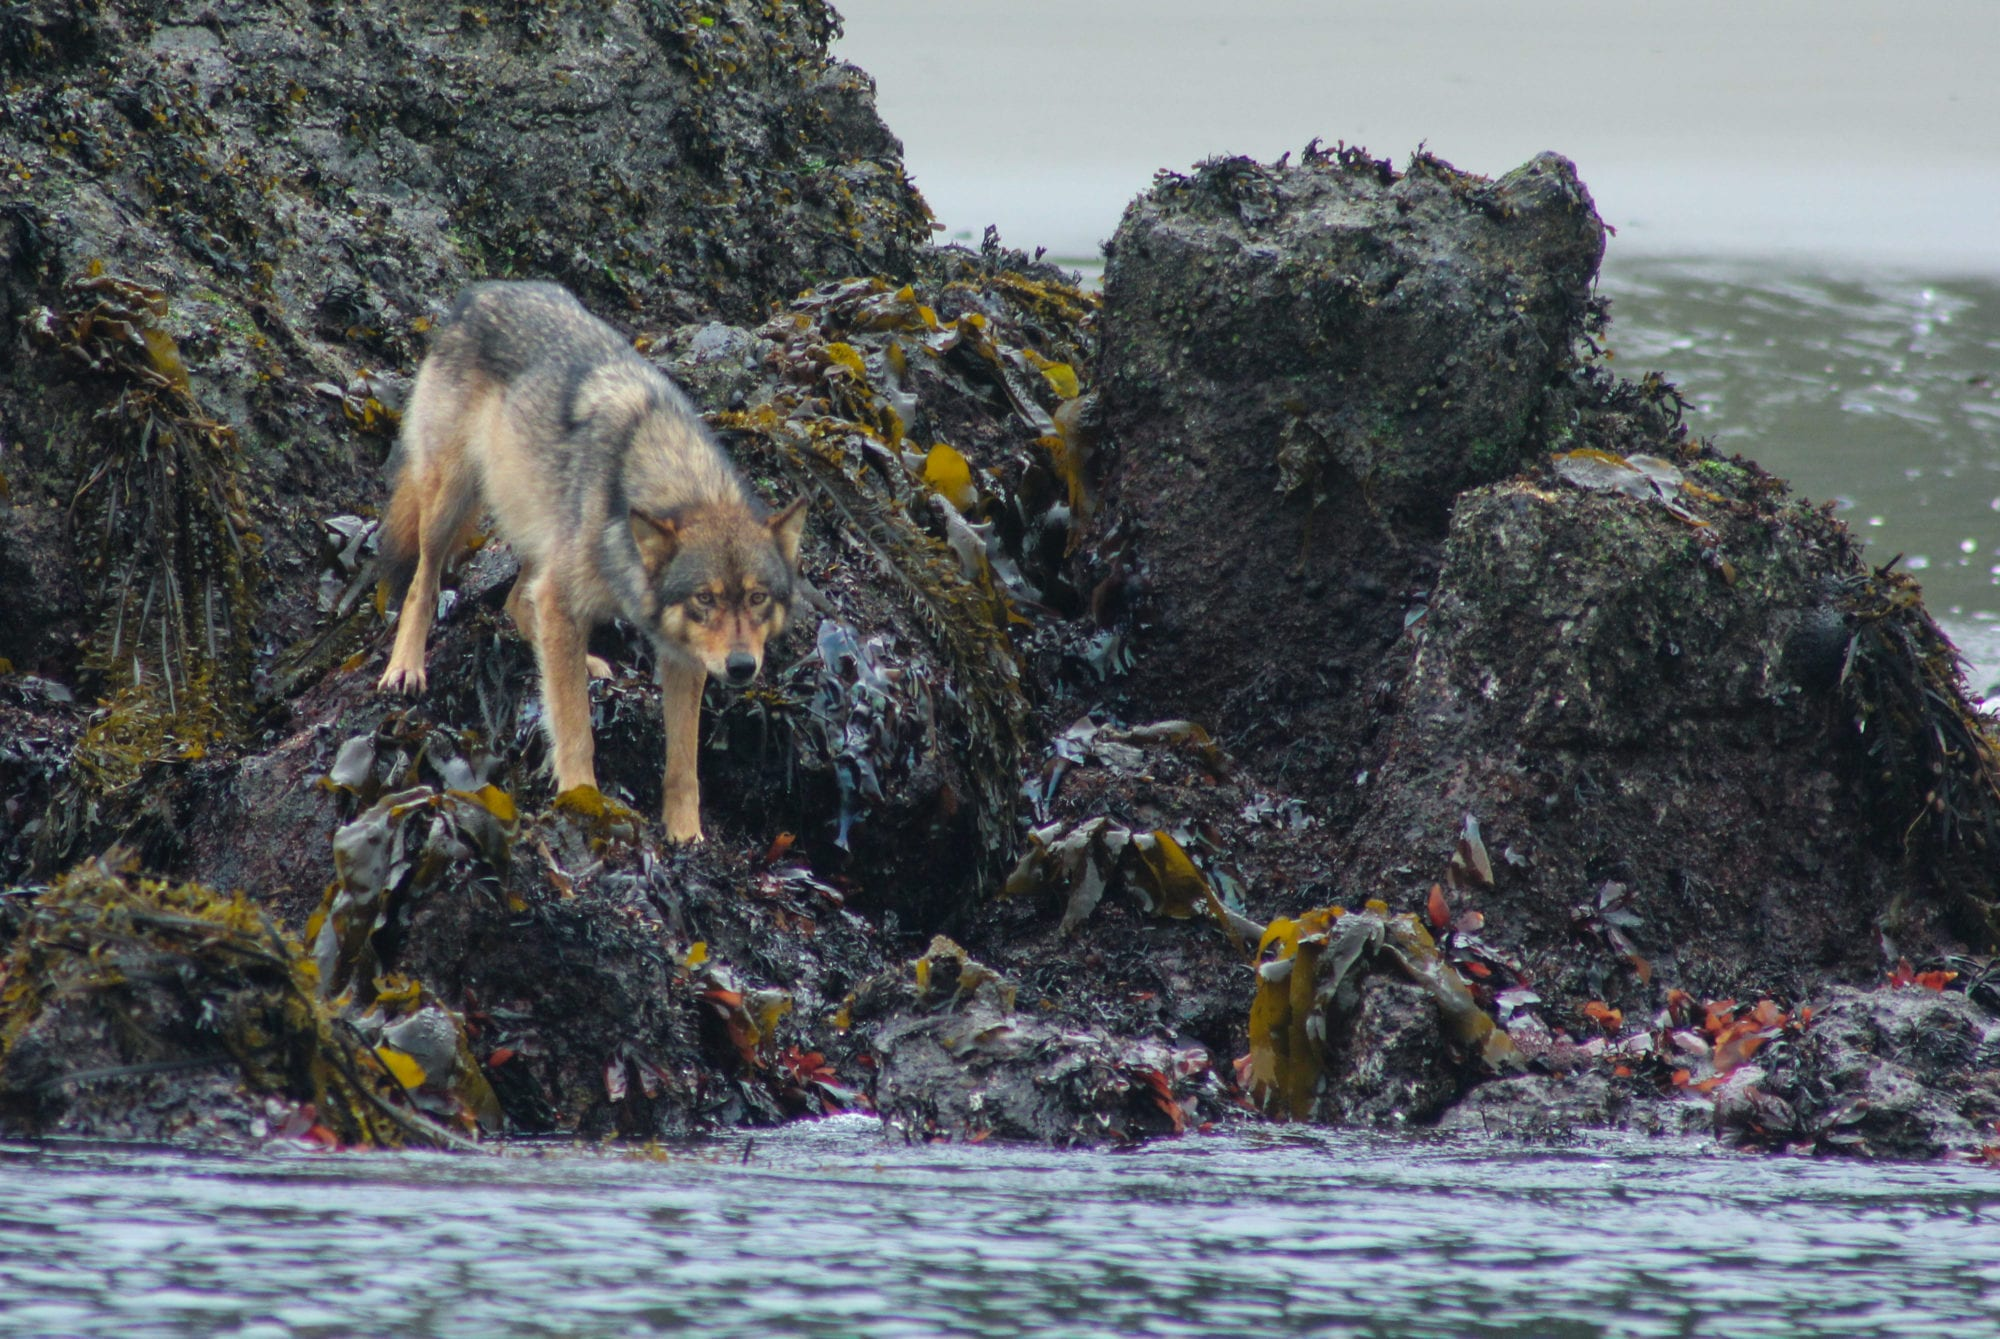 Coastal Wolf on the rocky edge of the water